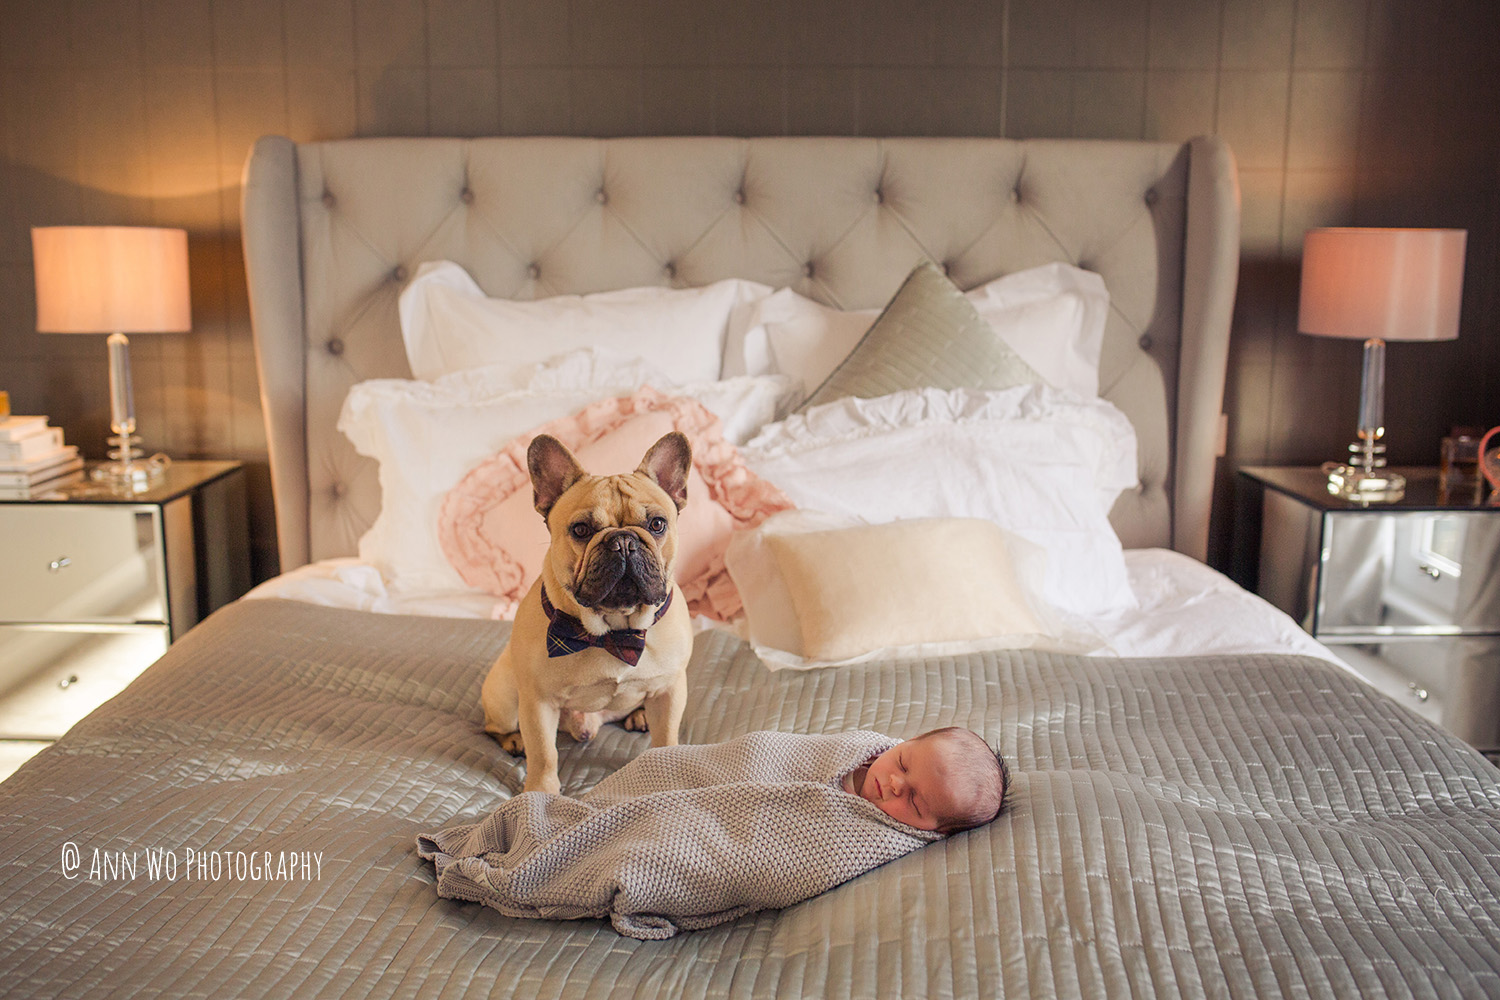 bulldog-newborn-baby-photography-puppy-ann-wo-london.jpg